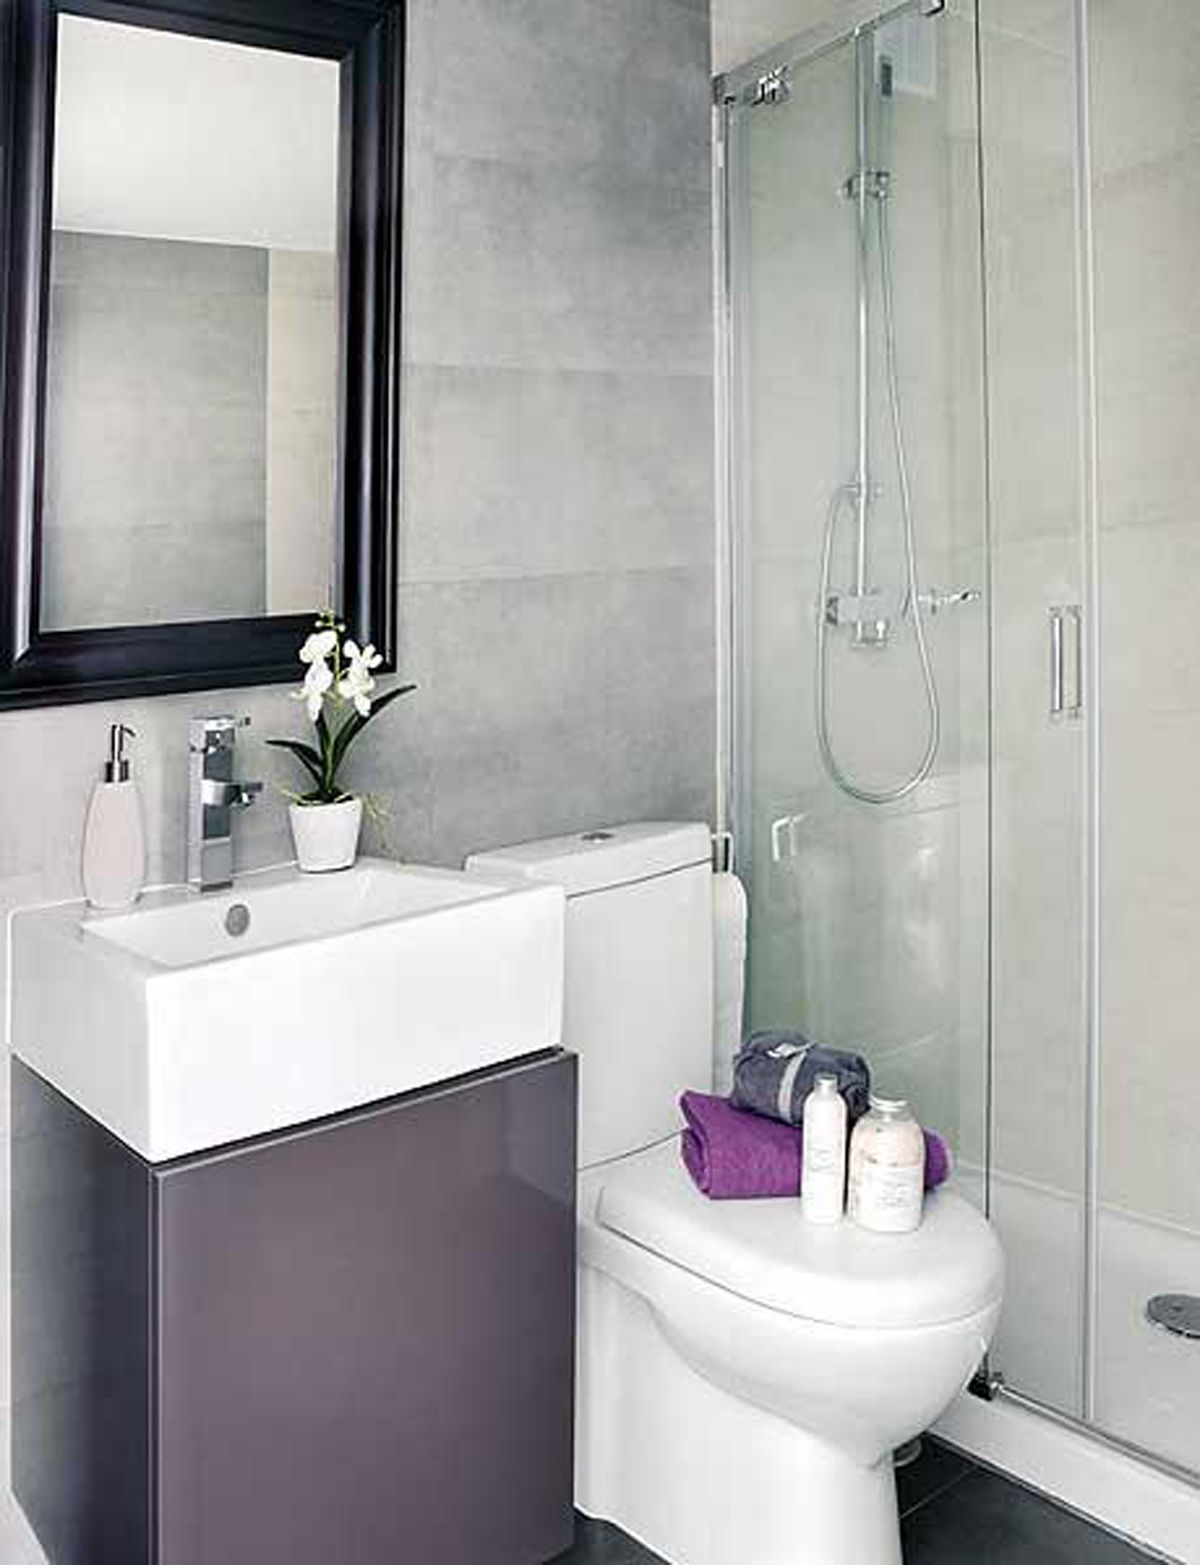 Toilet Design Ideas 25 best ideas about small toilet on pinterest small toilet room toilet ideas and toilet room Apartment Bathroom Design